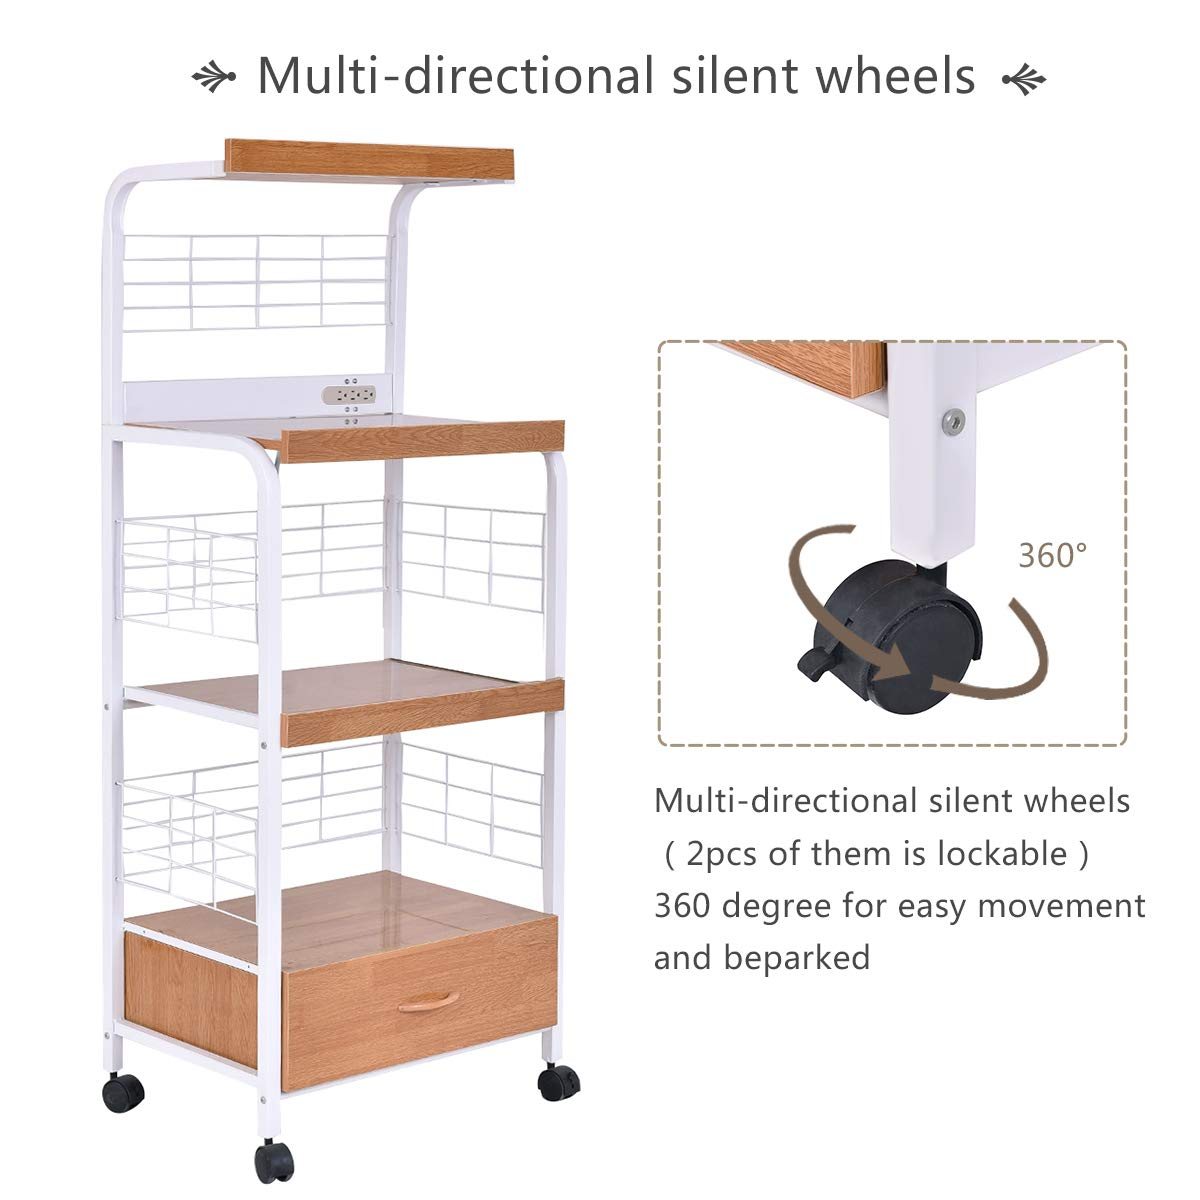 Giantex Microwave Cart Kitchen Baker's Rack Microwave Oven Stand Rolling Kitchen Storage Cart Utensils Organizer w/Electric Outlet and Drawer by Giantex (Image #4)